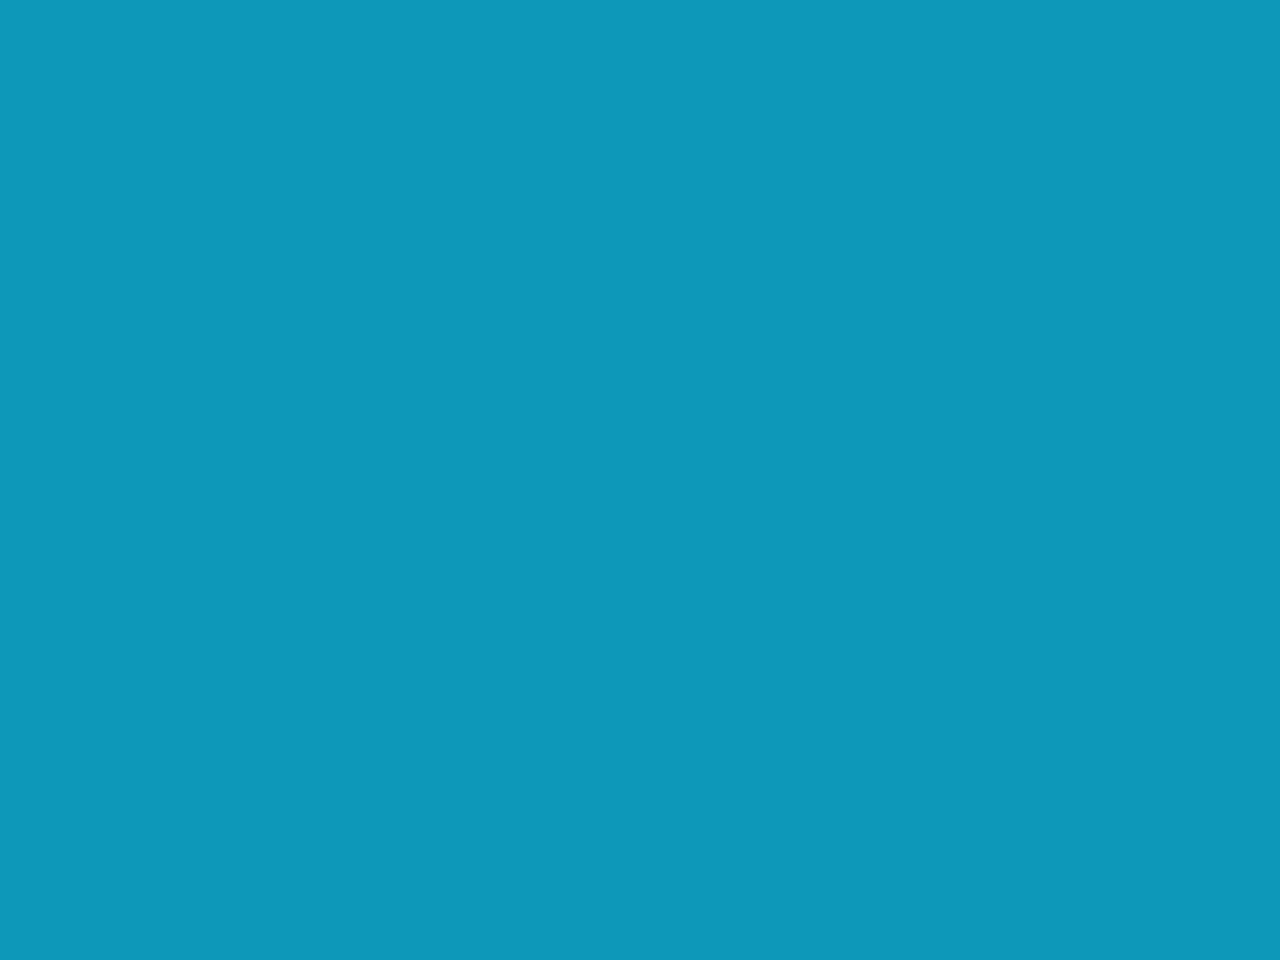 1280x960 Blue-green Solid Color Background